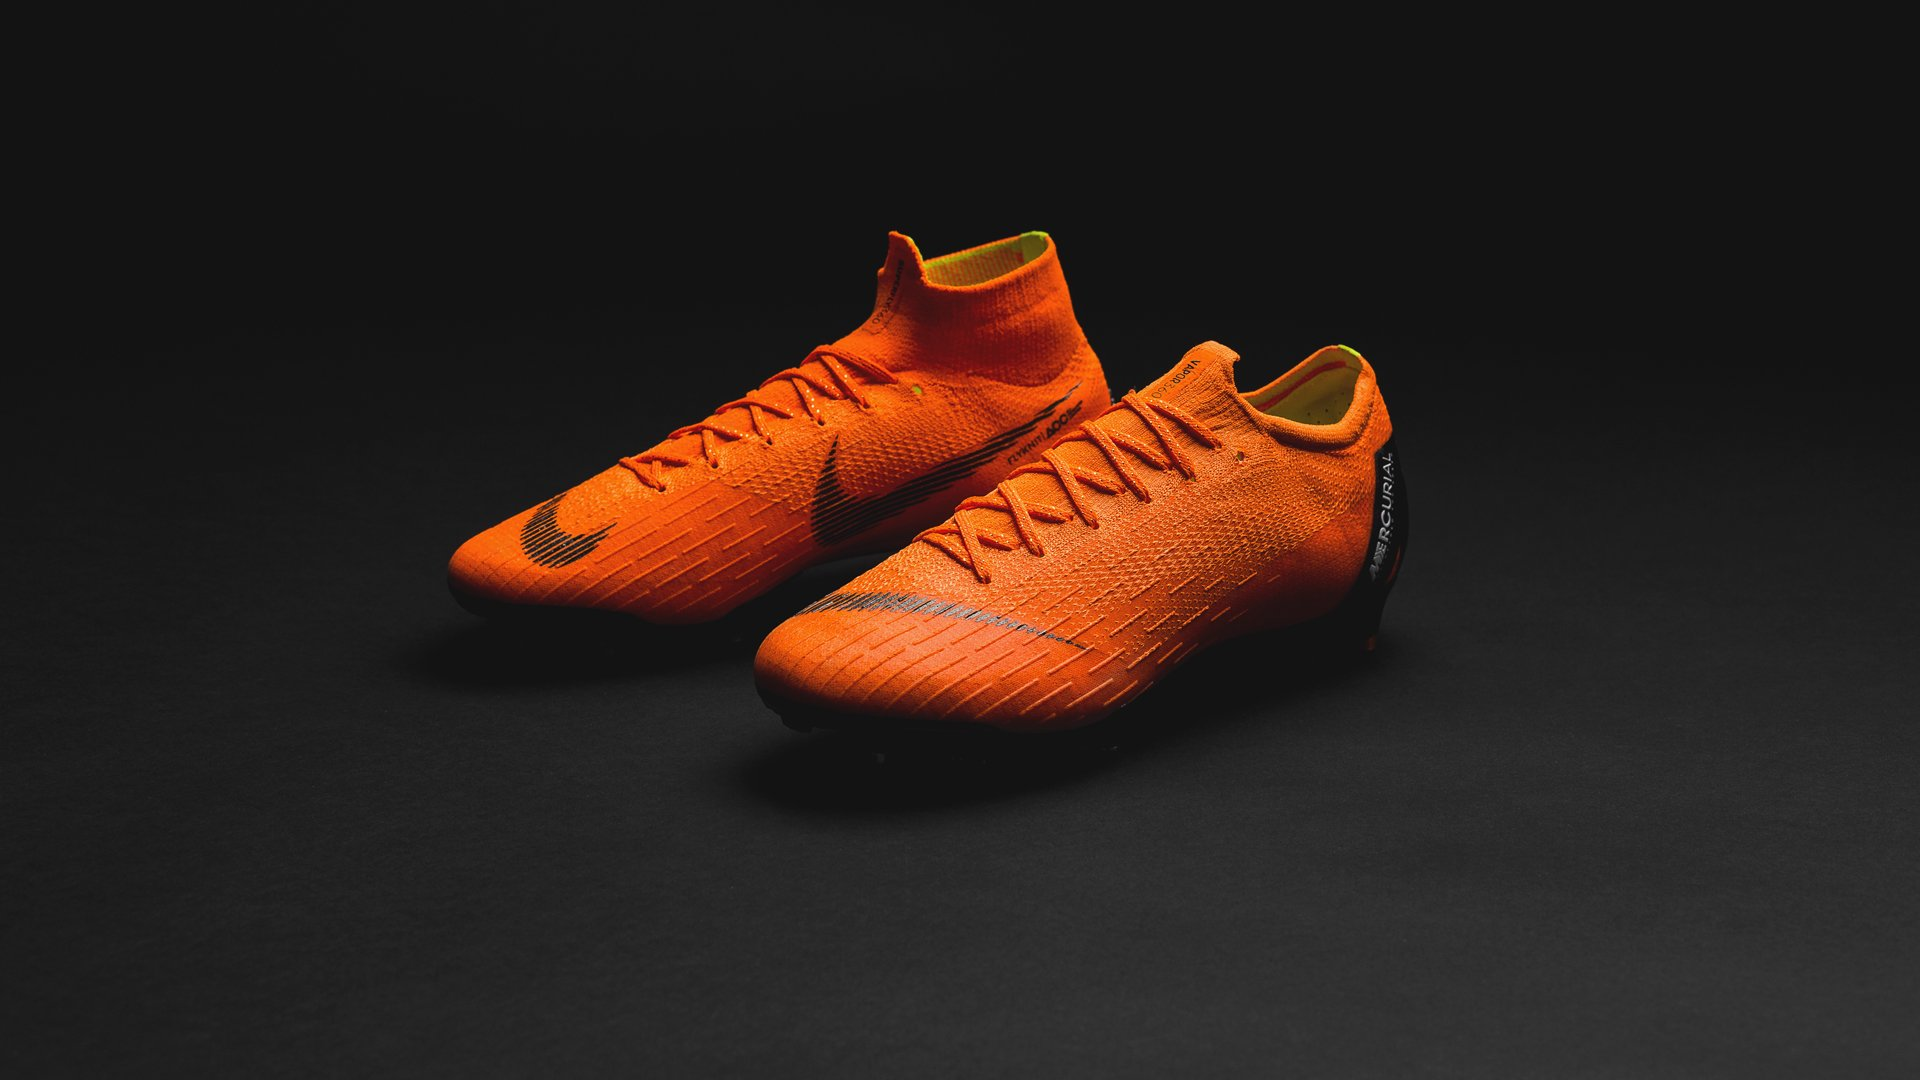 b626d54c7 Nike unveils the Mercurial 360